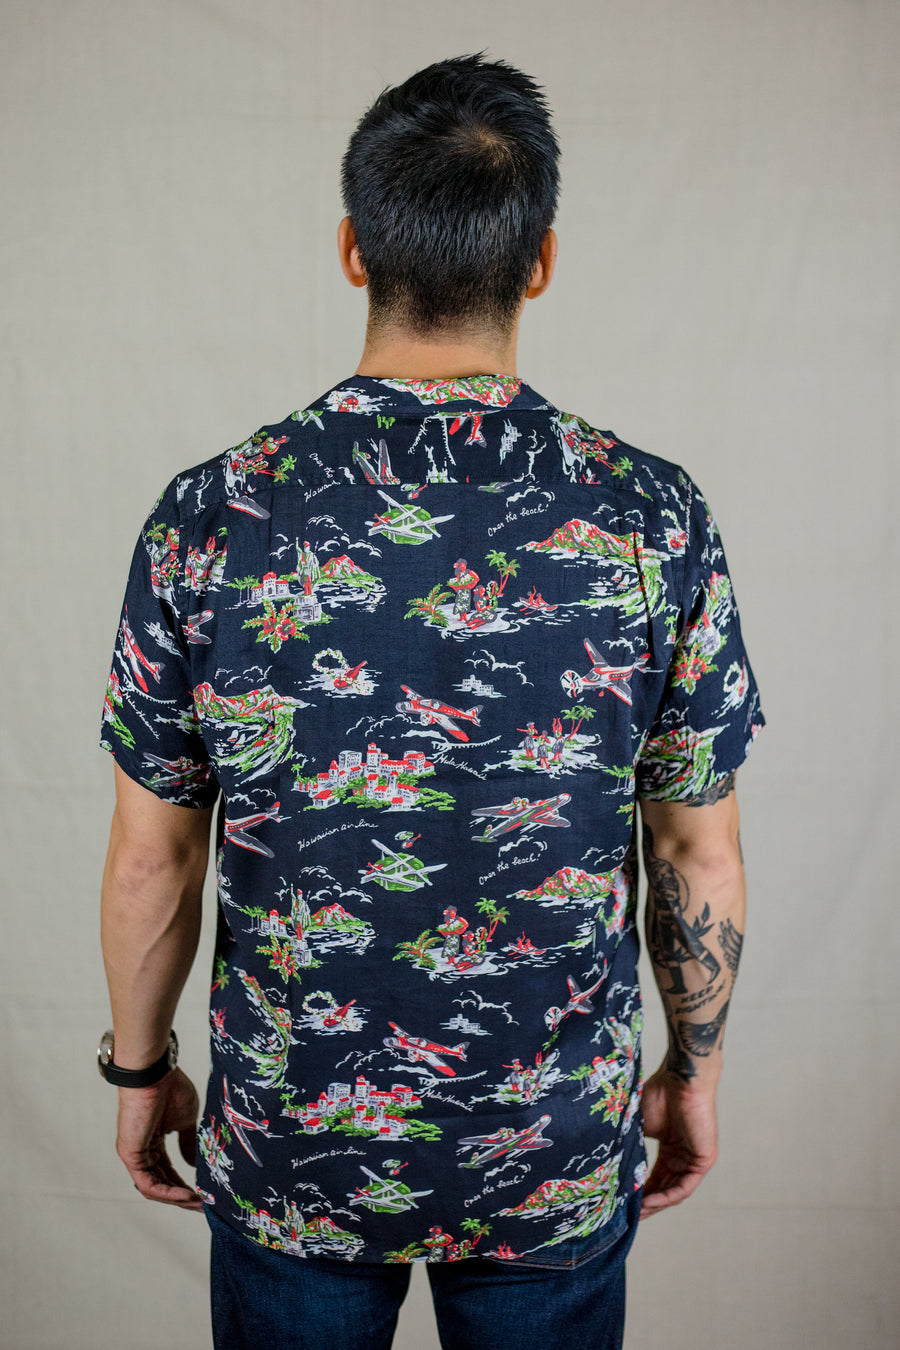 Knickerbocker MFG Central Shirt - Navy - Franklin & Poe